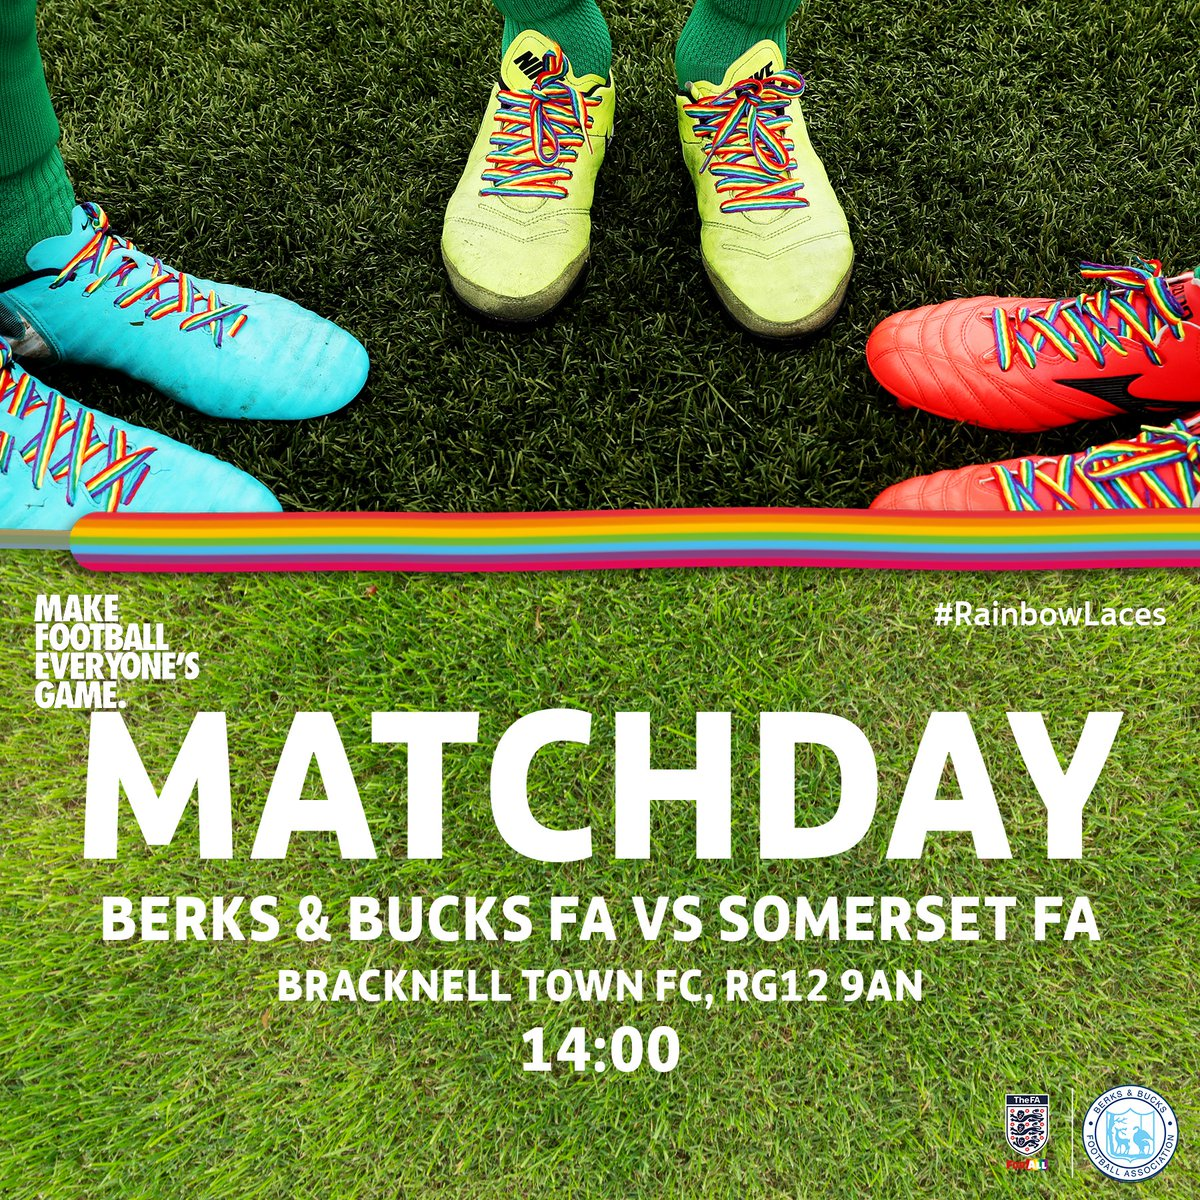 Getting ready here @BracknellTownFC for the @BerksBucksFA v @SomersetFA South West Counties Championship! KO in 20 mins and team news coming up shortly.... #BerksBucksFA #ForAll #RainbowLacesDay